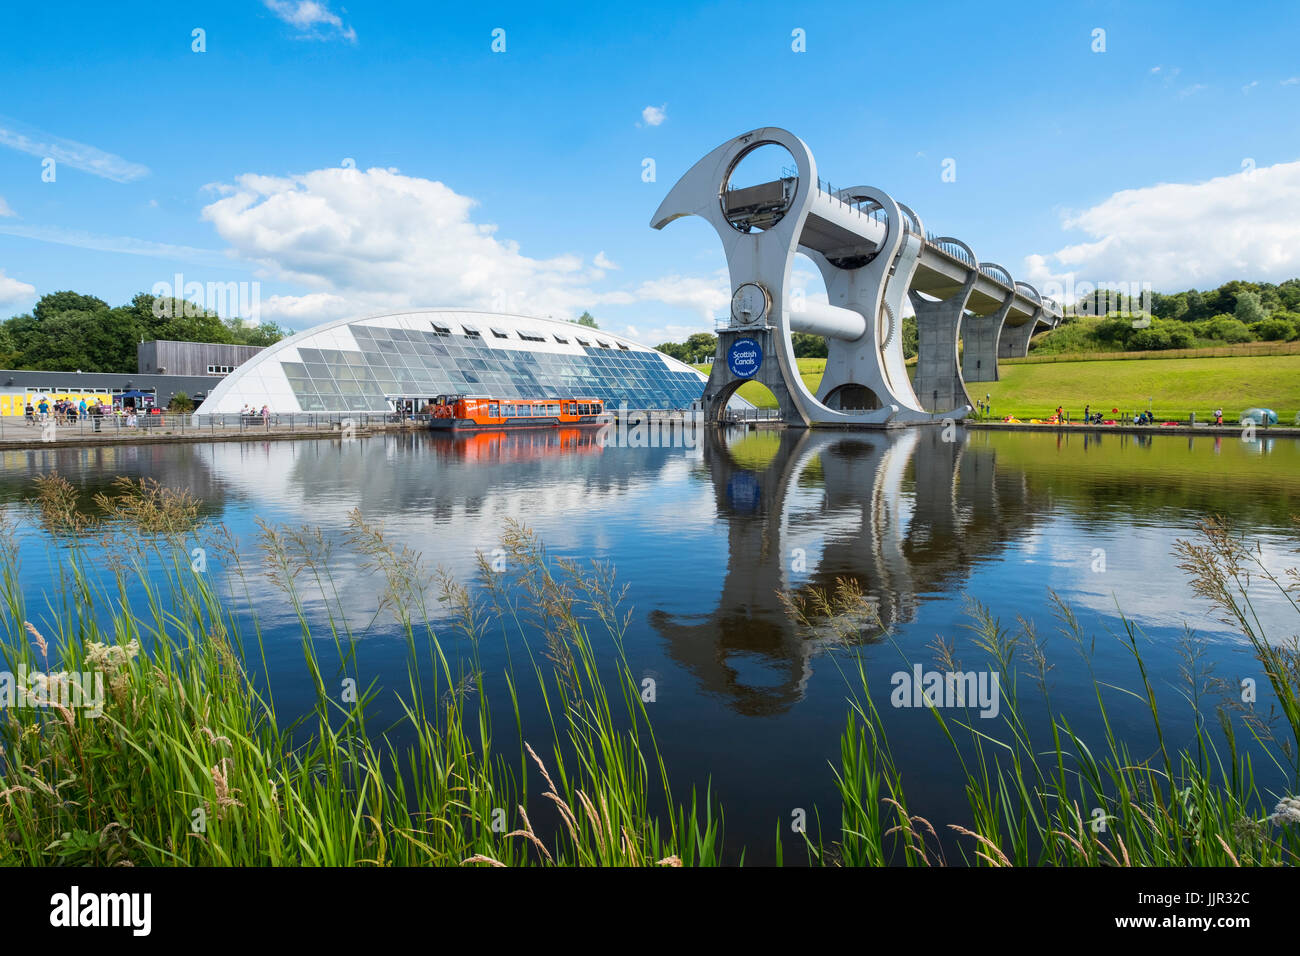 View of Falkirk Wheel ship lift connecting Forth and Clyde Canal with Union Canal in Scotland, United Kingdom - Stock Image